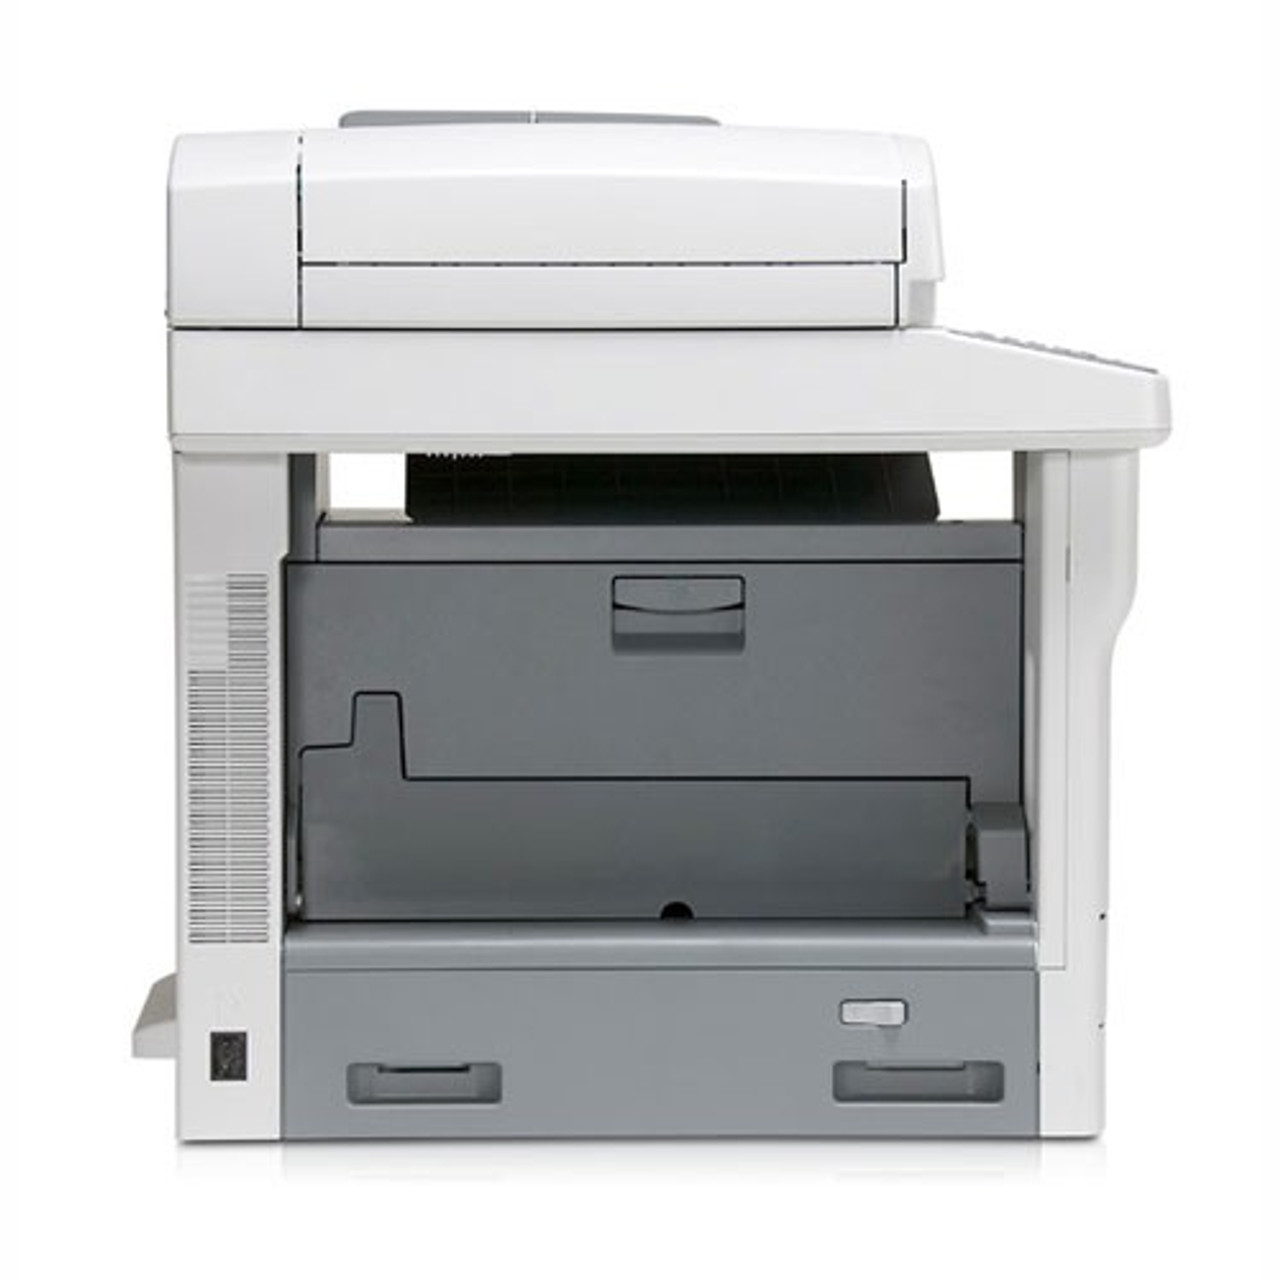 HP LaserJet M5035 MFP Laser Printer